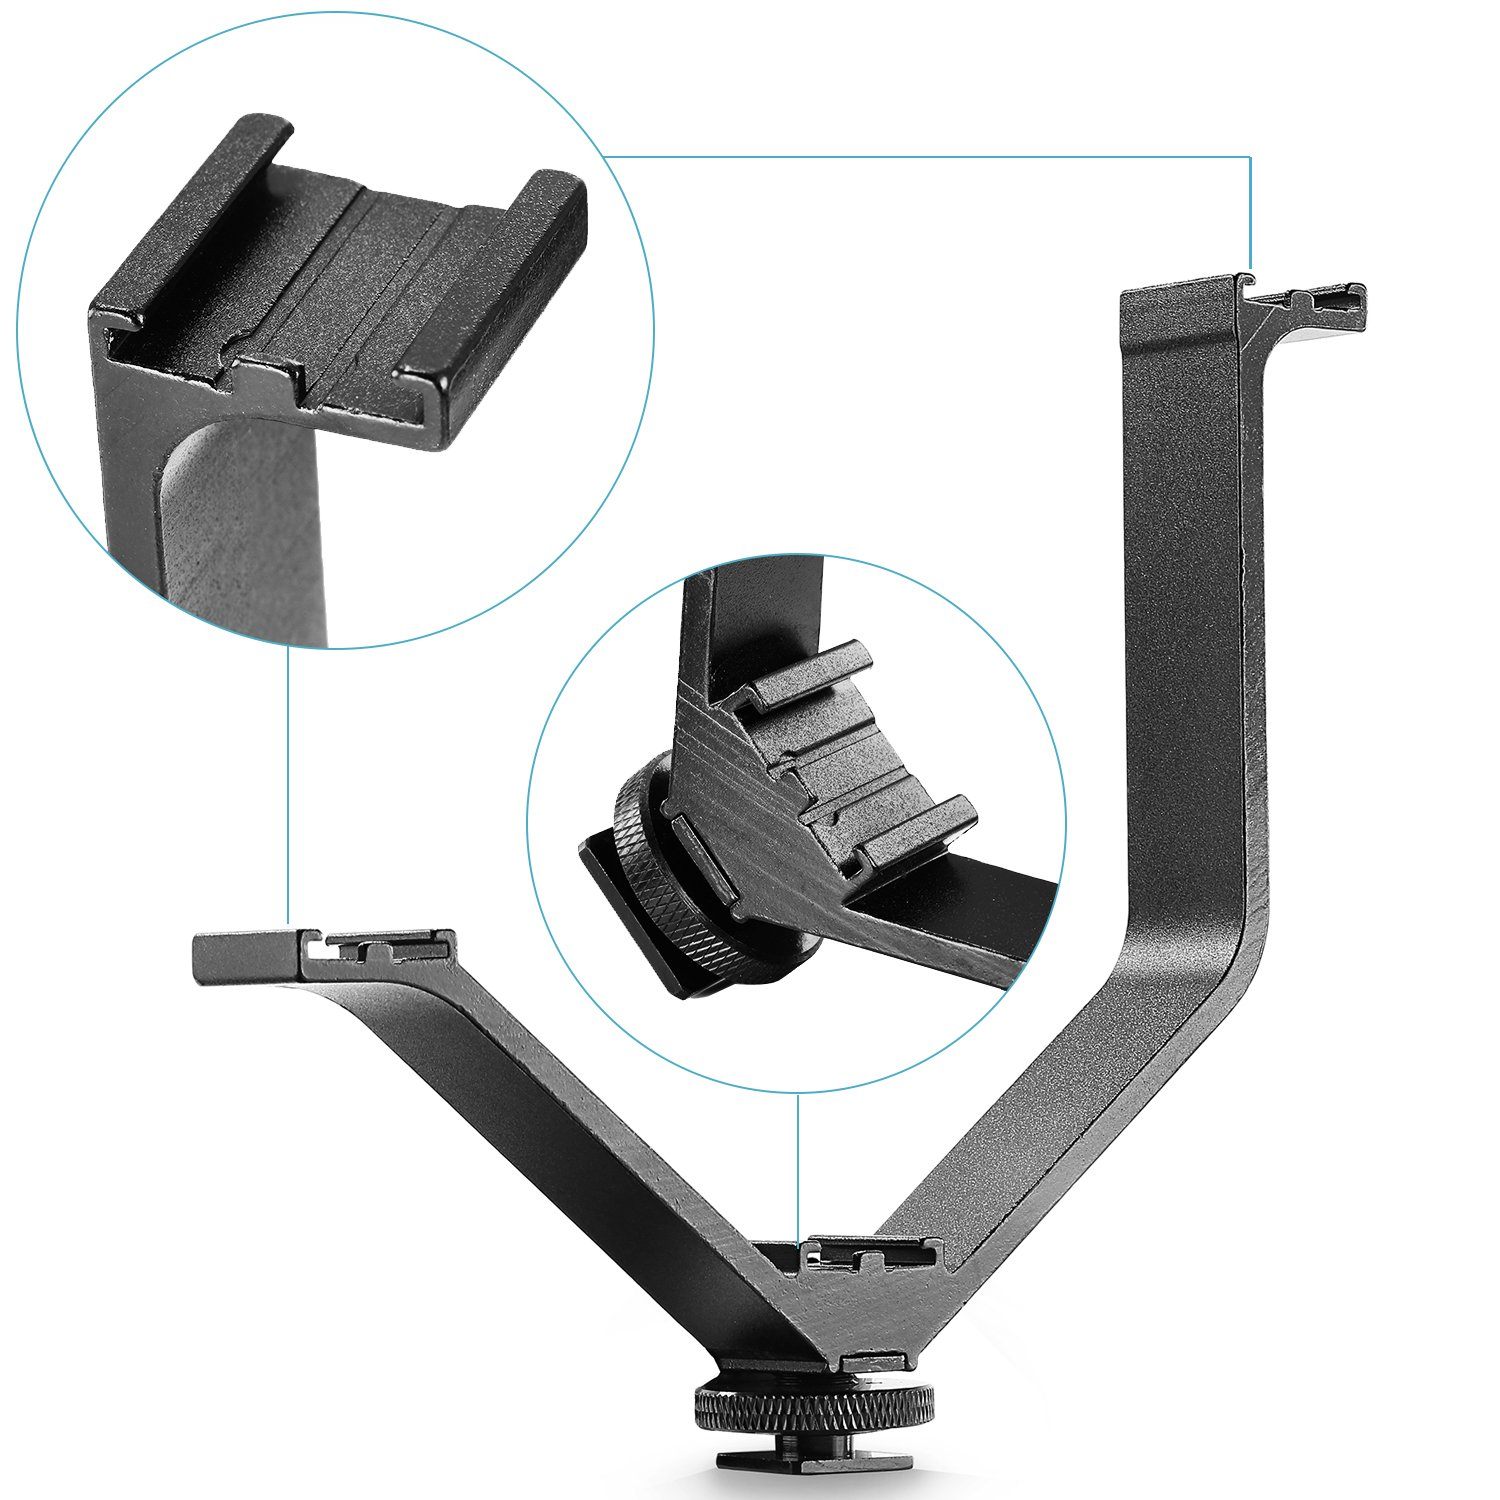 Neewer/® Aluminium Alloy 6.5//16.4cm V-shape Triple 3 Universal Cold Shoe Mount Bracket for Nikon Canon Sony DSLR Camera or Camcorder Accessory Such as LED Video Light,Microphone,Monitor,Flash